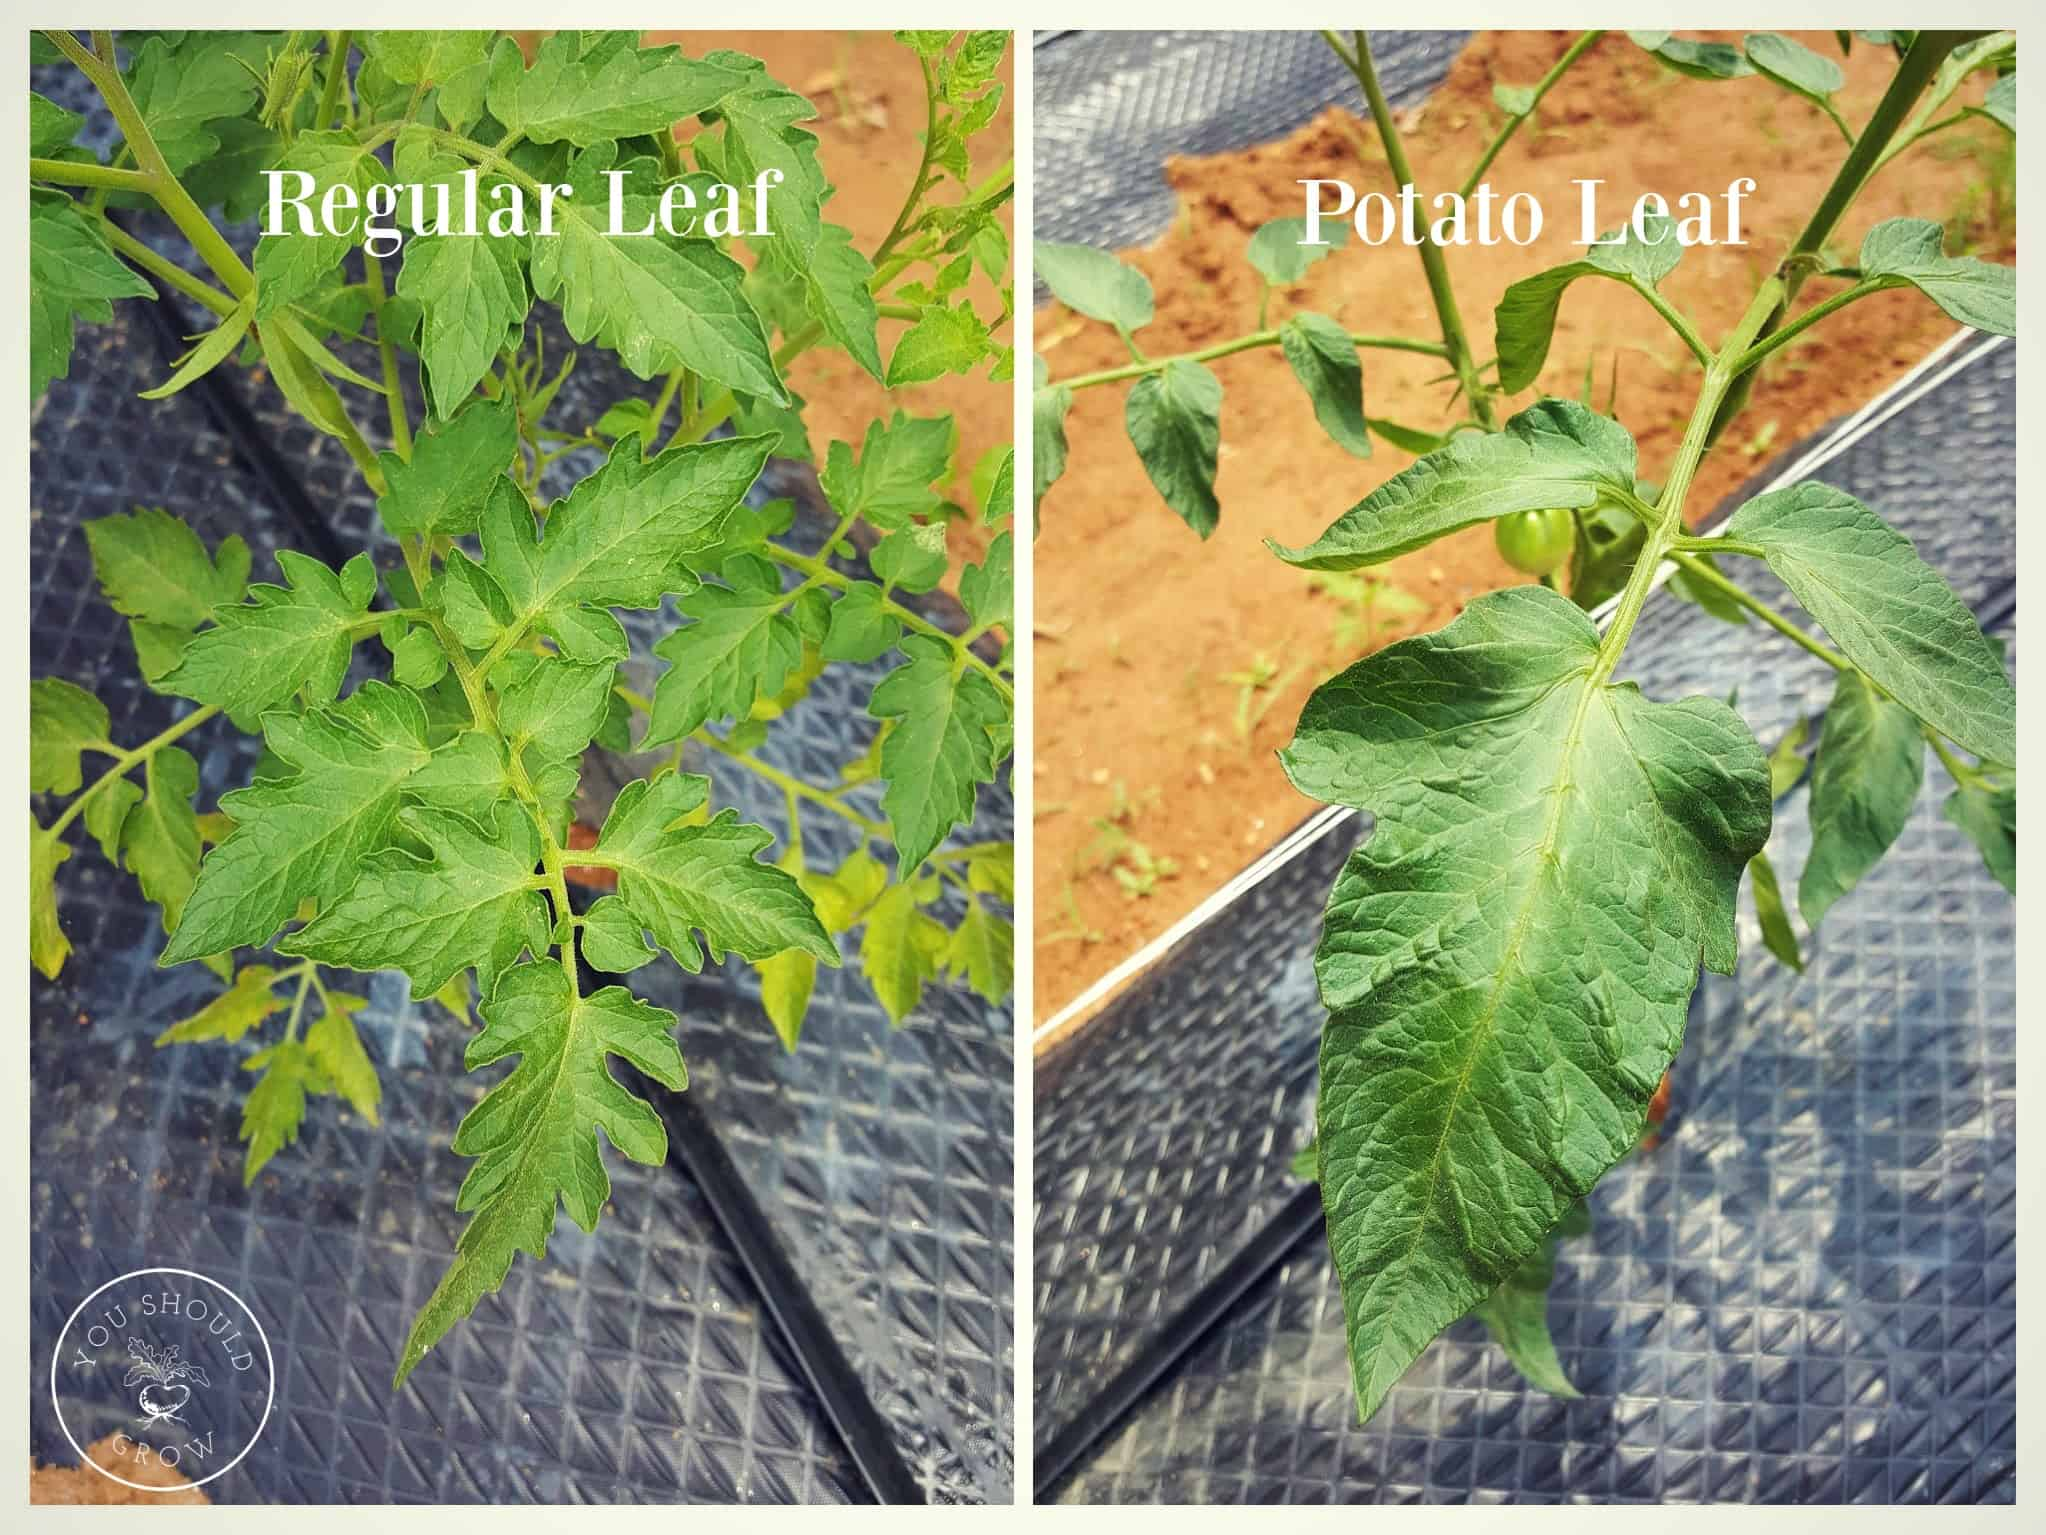 Image comparing regular leaf and potato leaf tomato plants